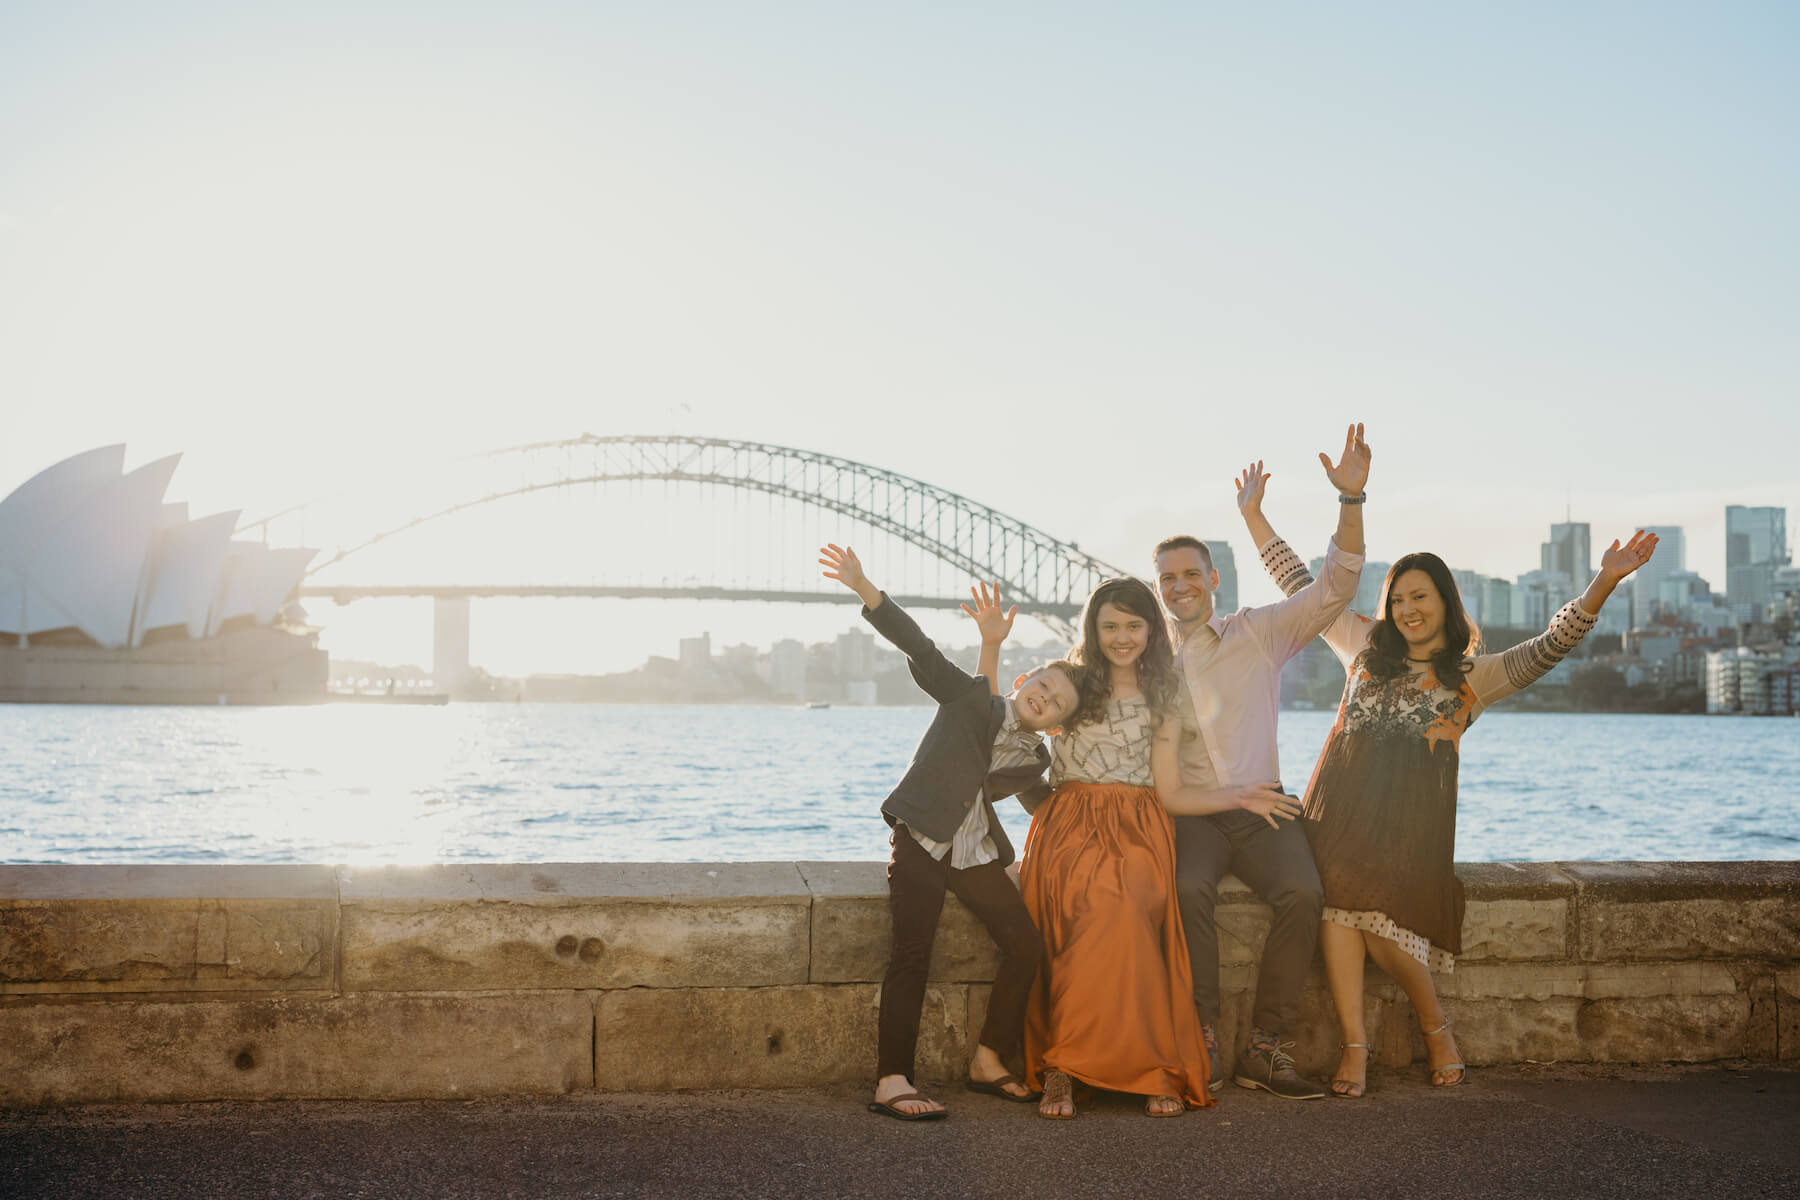 Family of 4 excited in front of the Sydney opera house in Australia